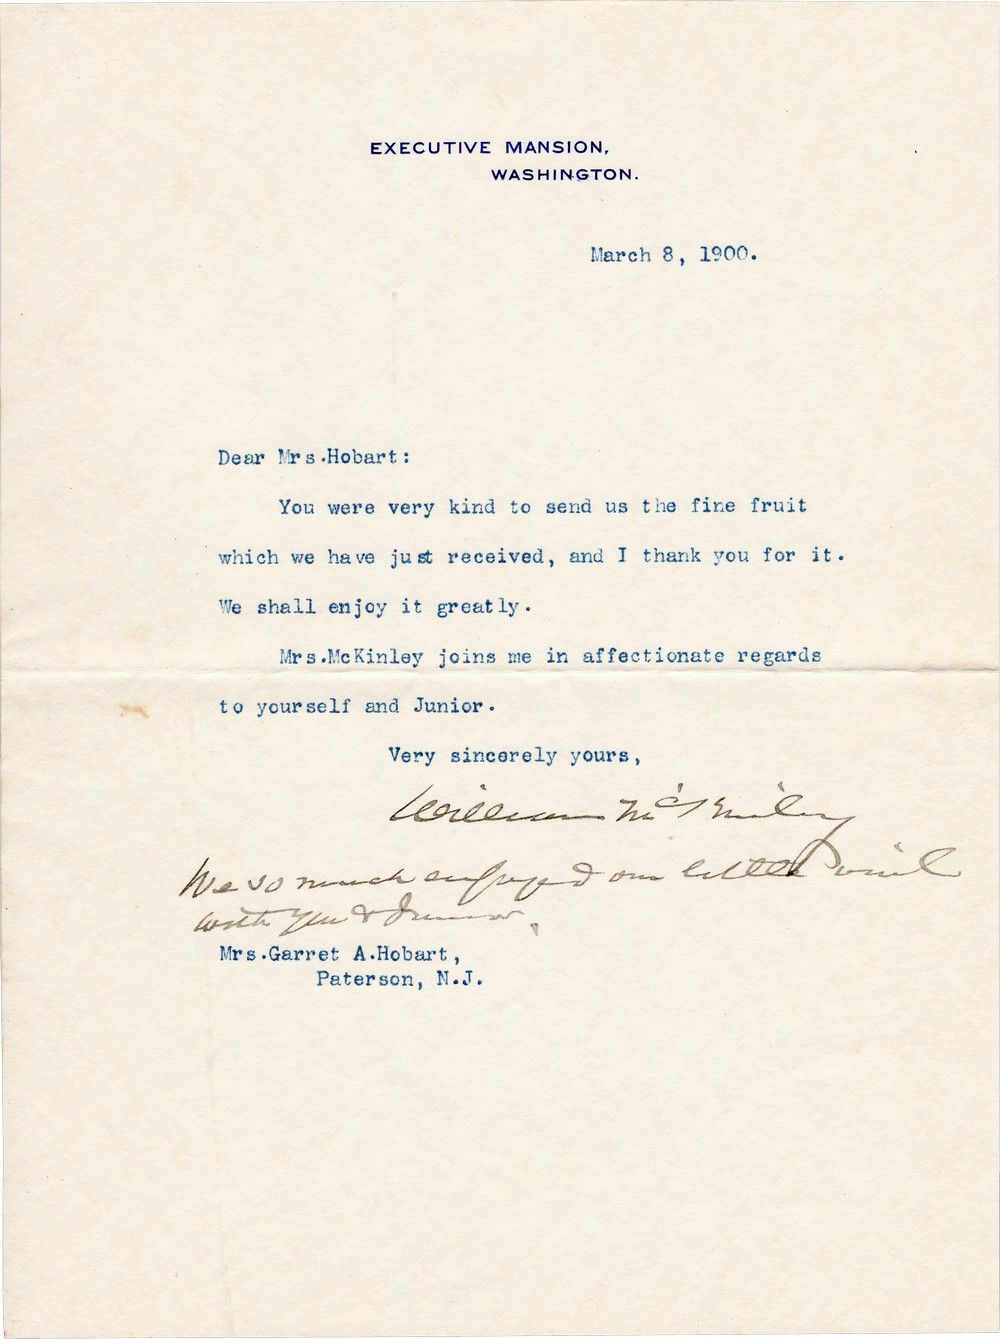 President William McKinley Writes to the Widow of His Vice President and Dear Friend, Mrs. Hobart